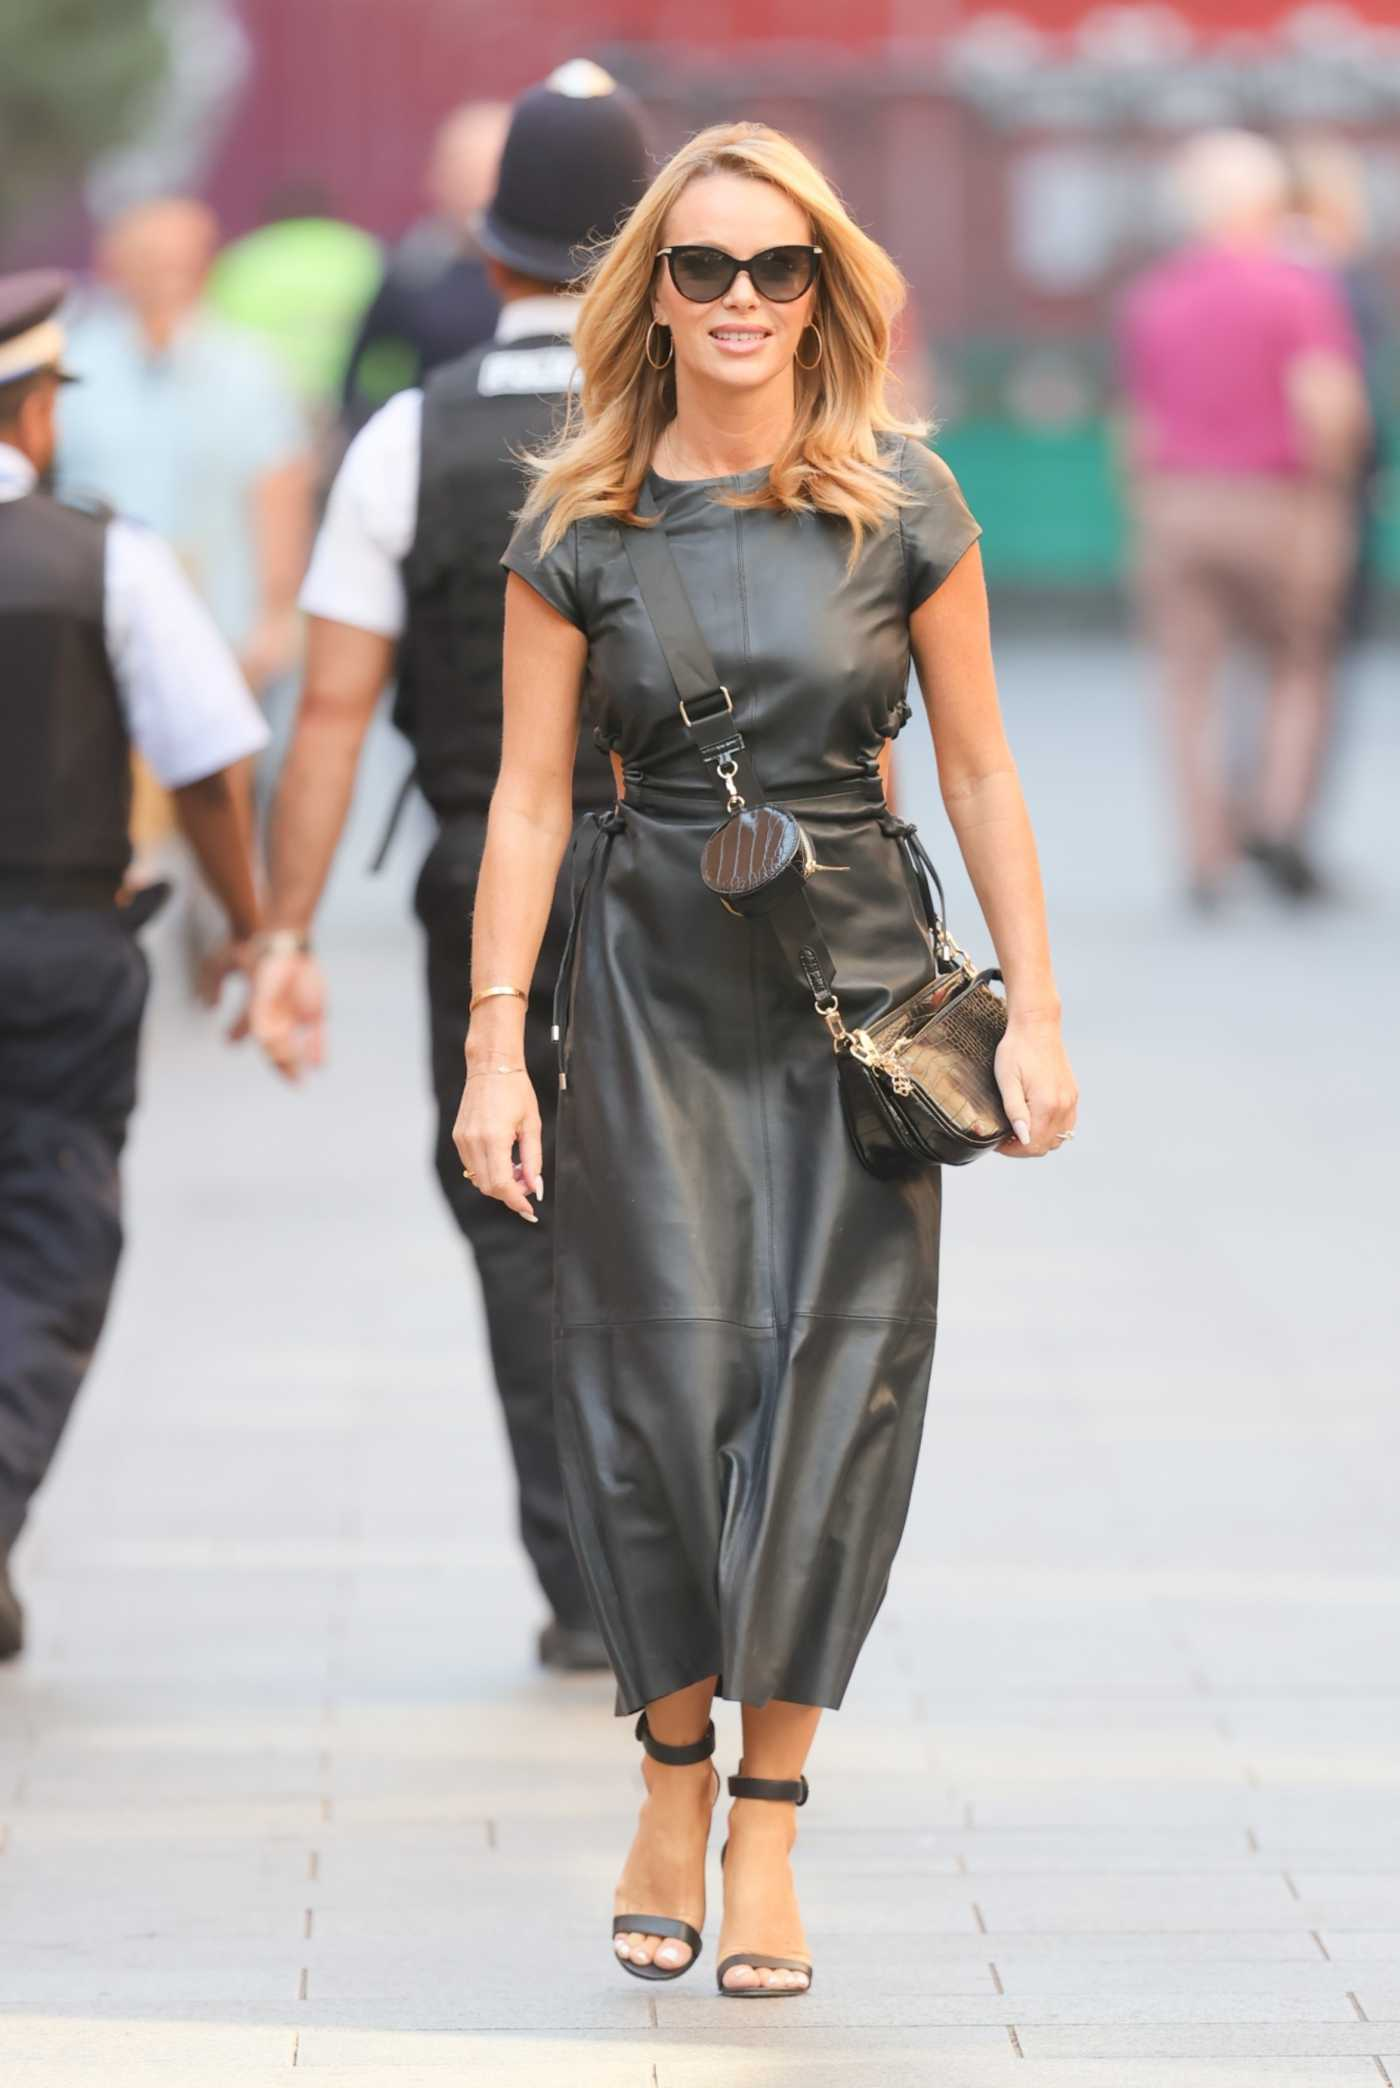 Amanda Holden in a Black Leather Dress Arrives at the Global Radio Studios in London 09/22/2021